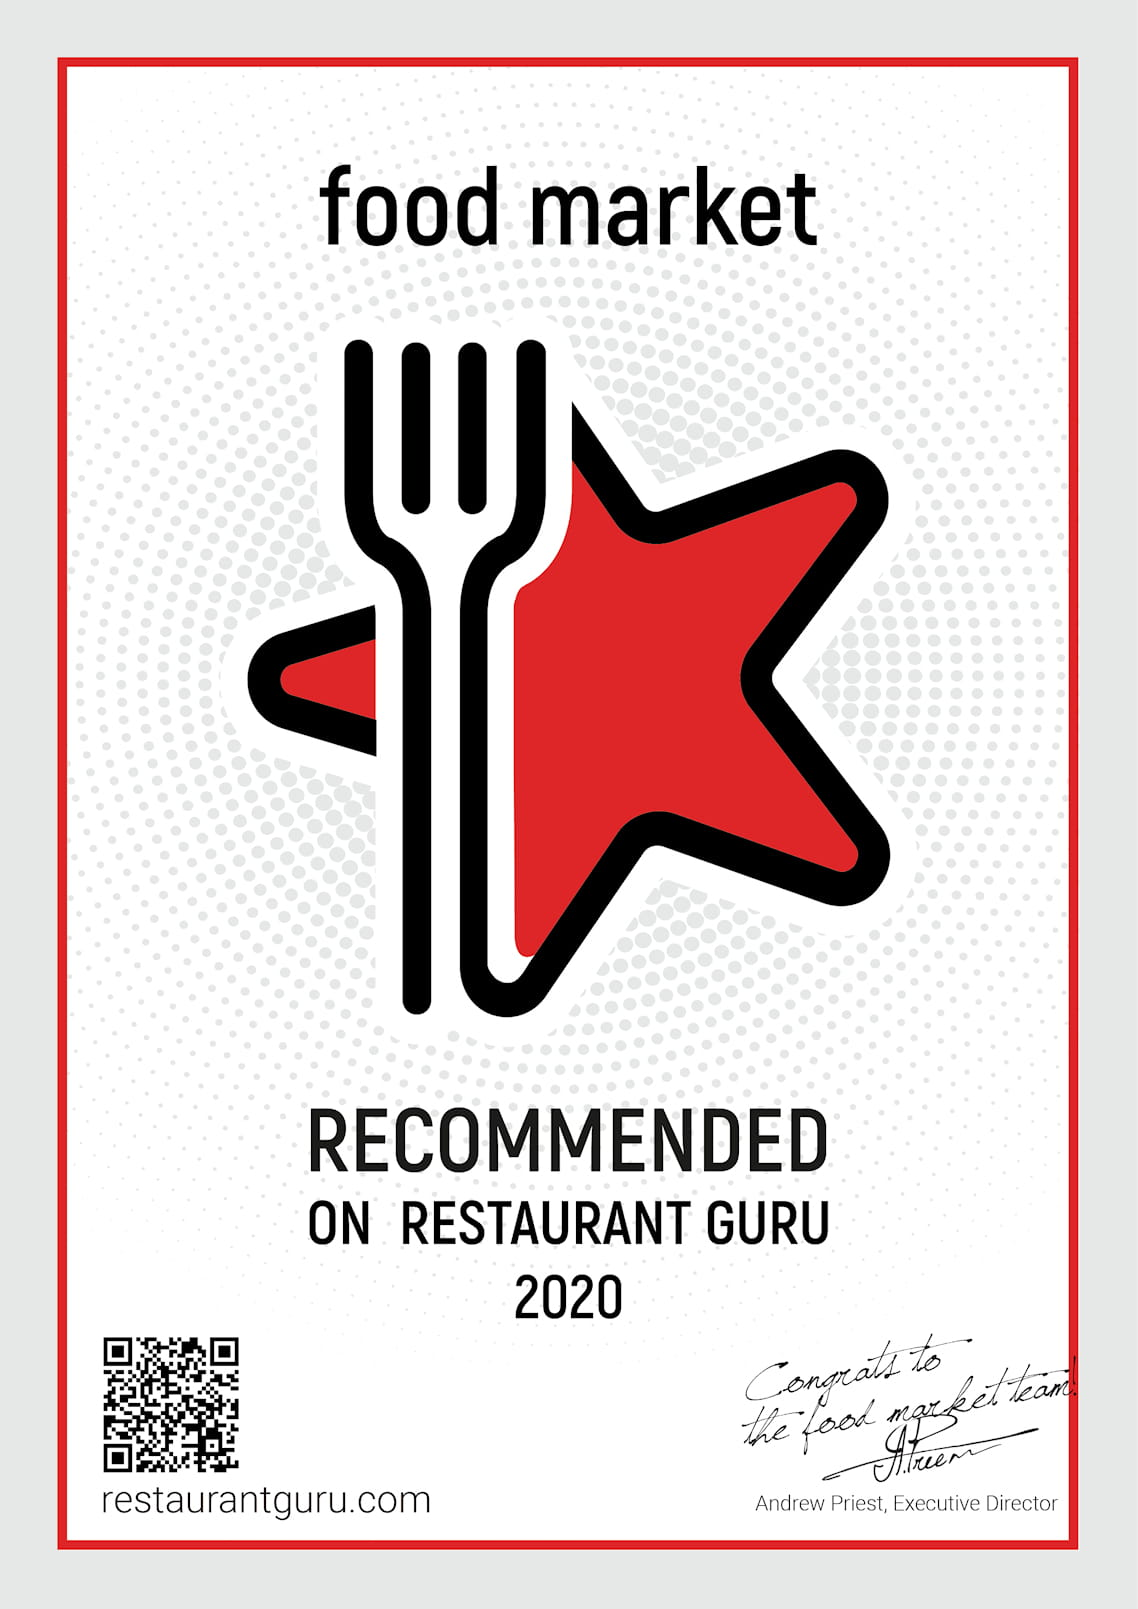 Food Market Kata is recommended by Restaurant Guru